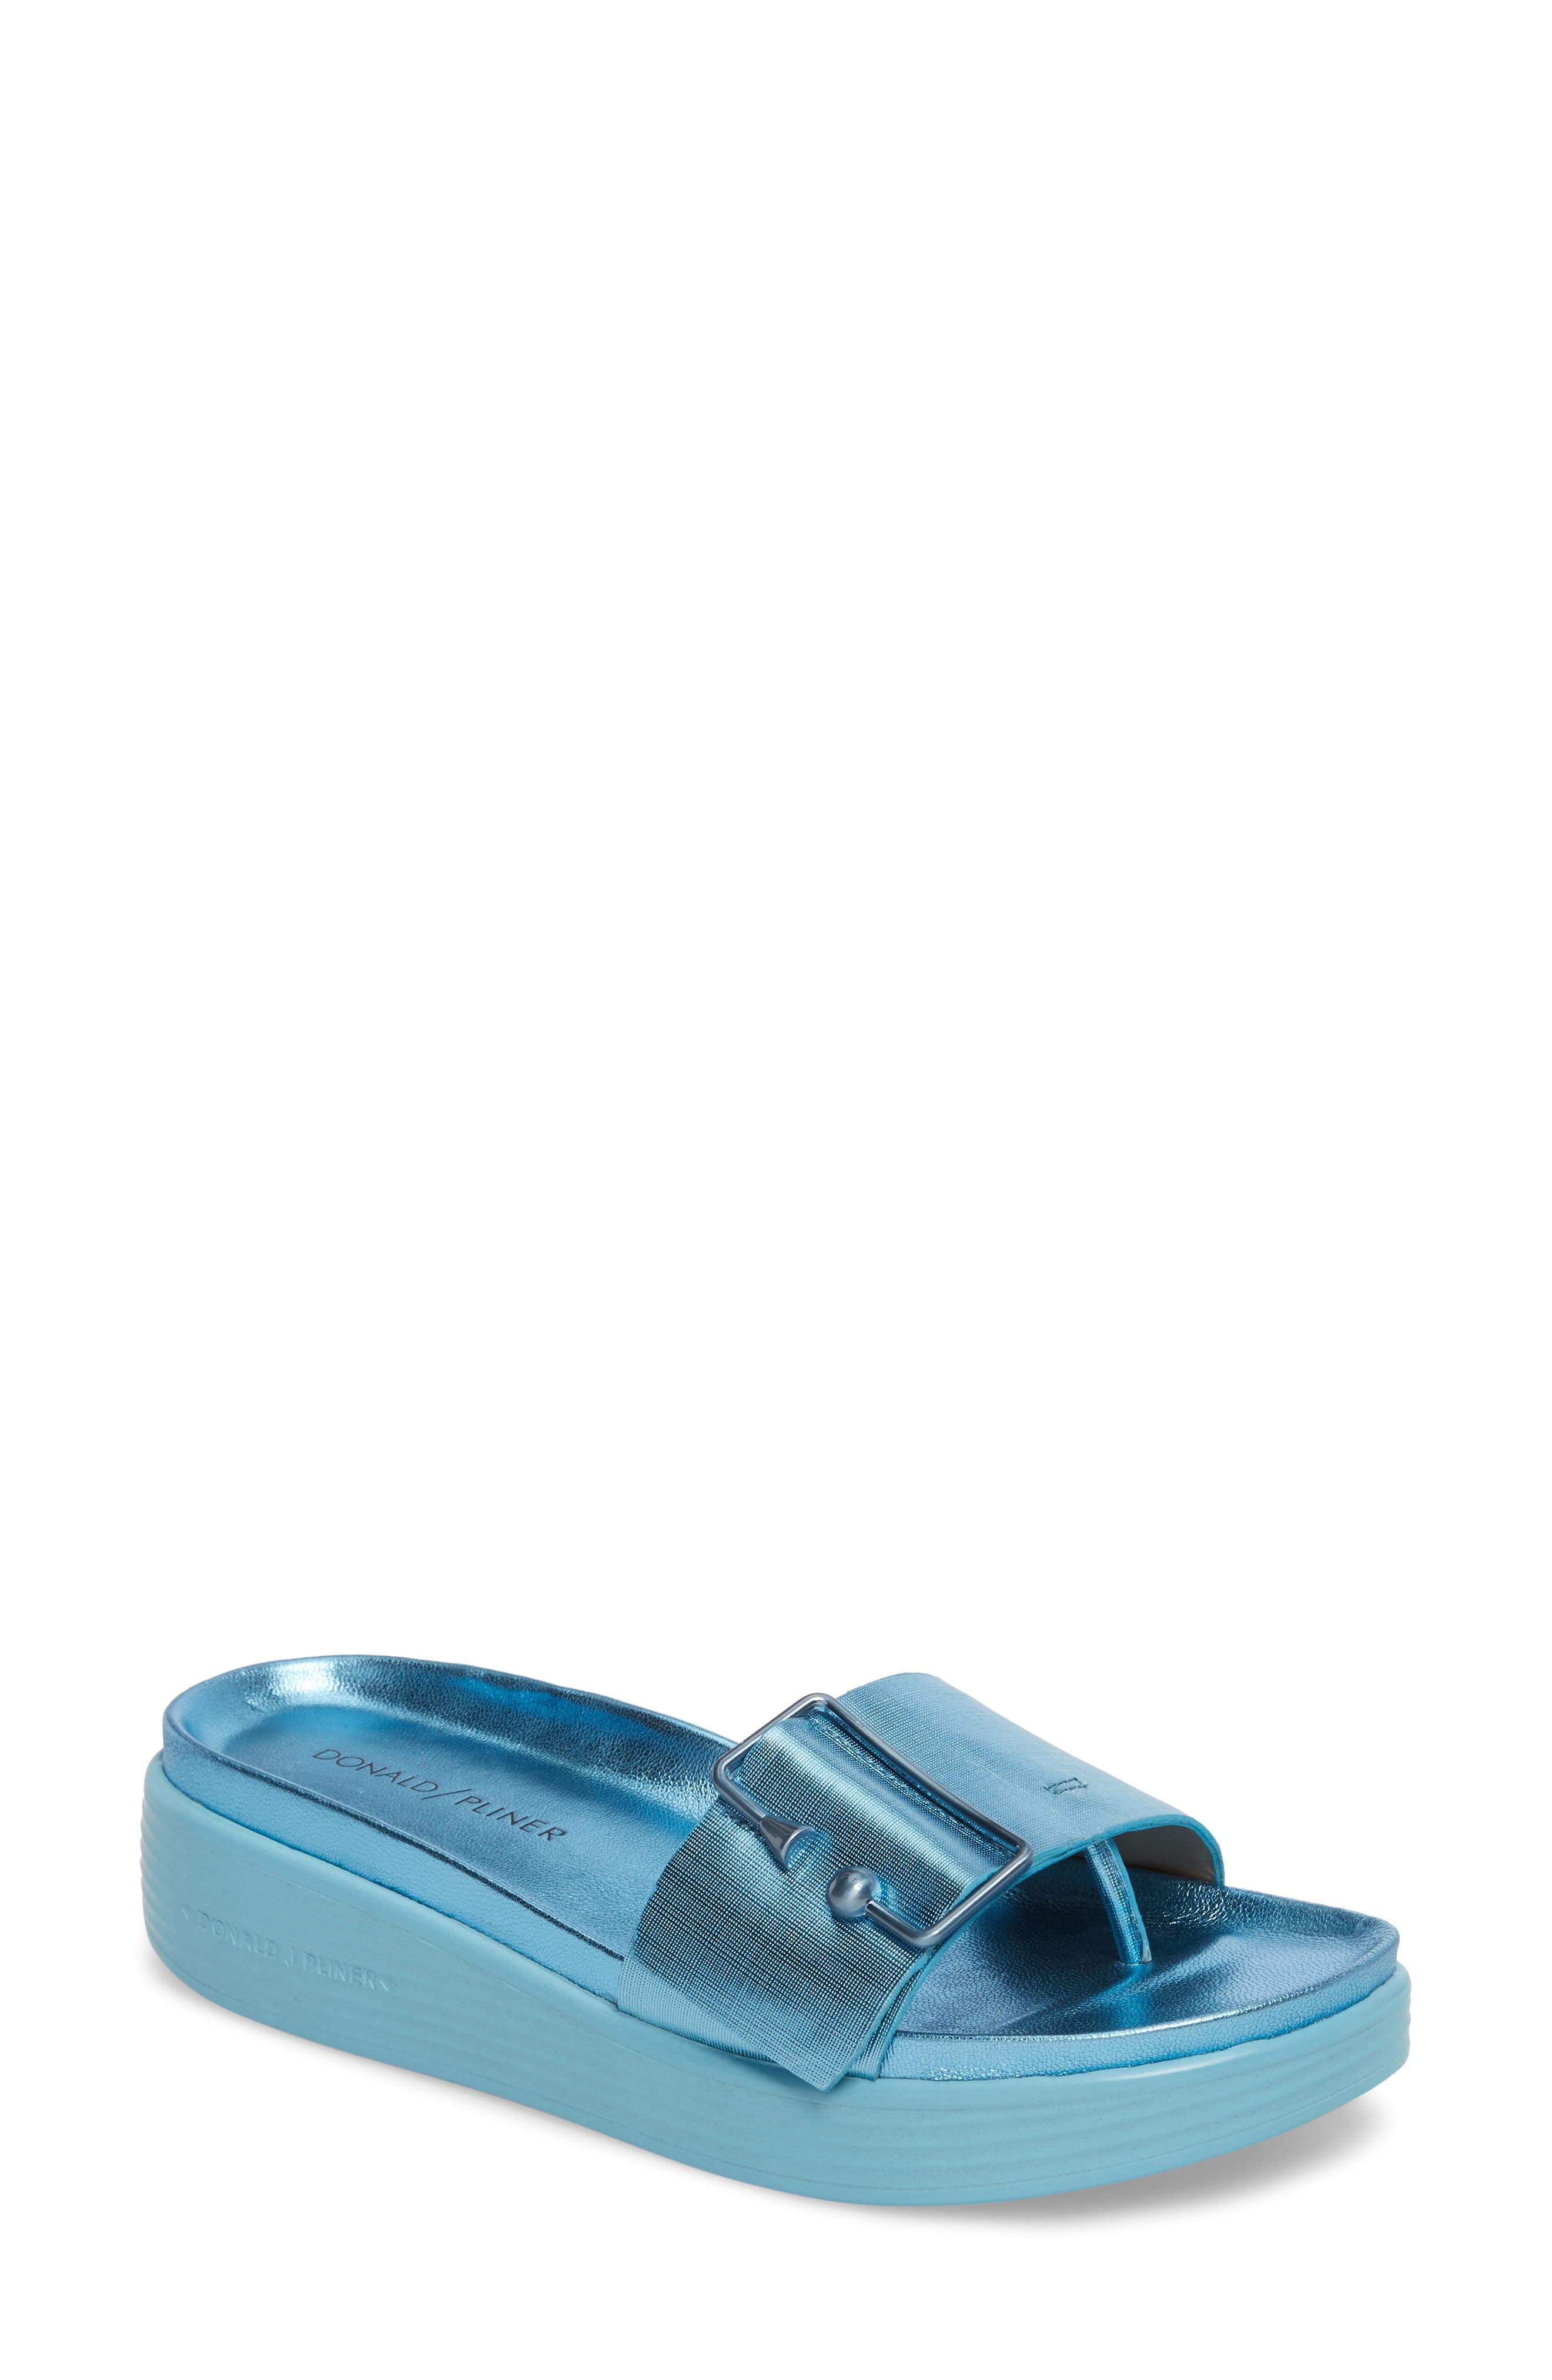 Women's Fara Slide Sandal